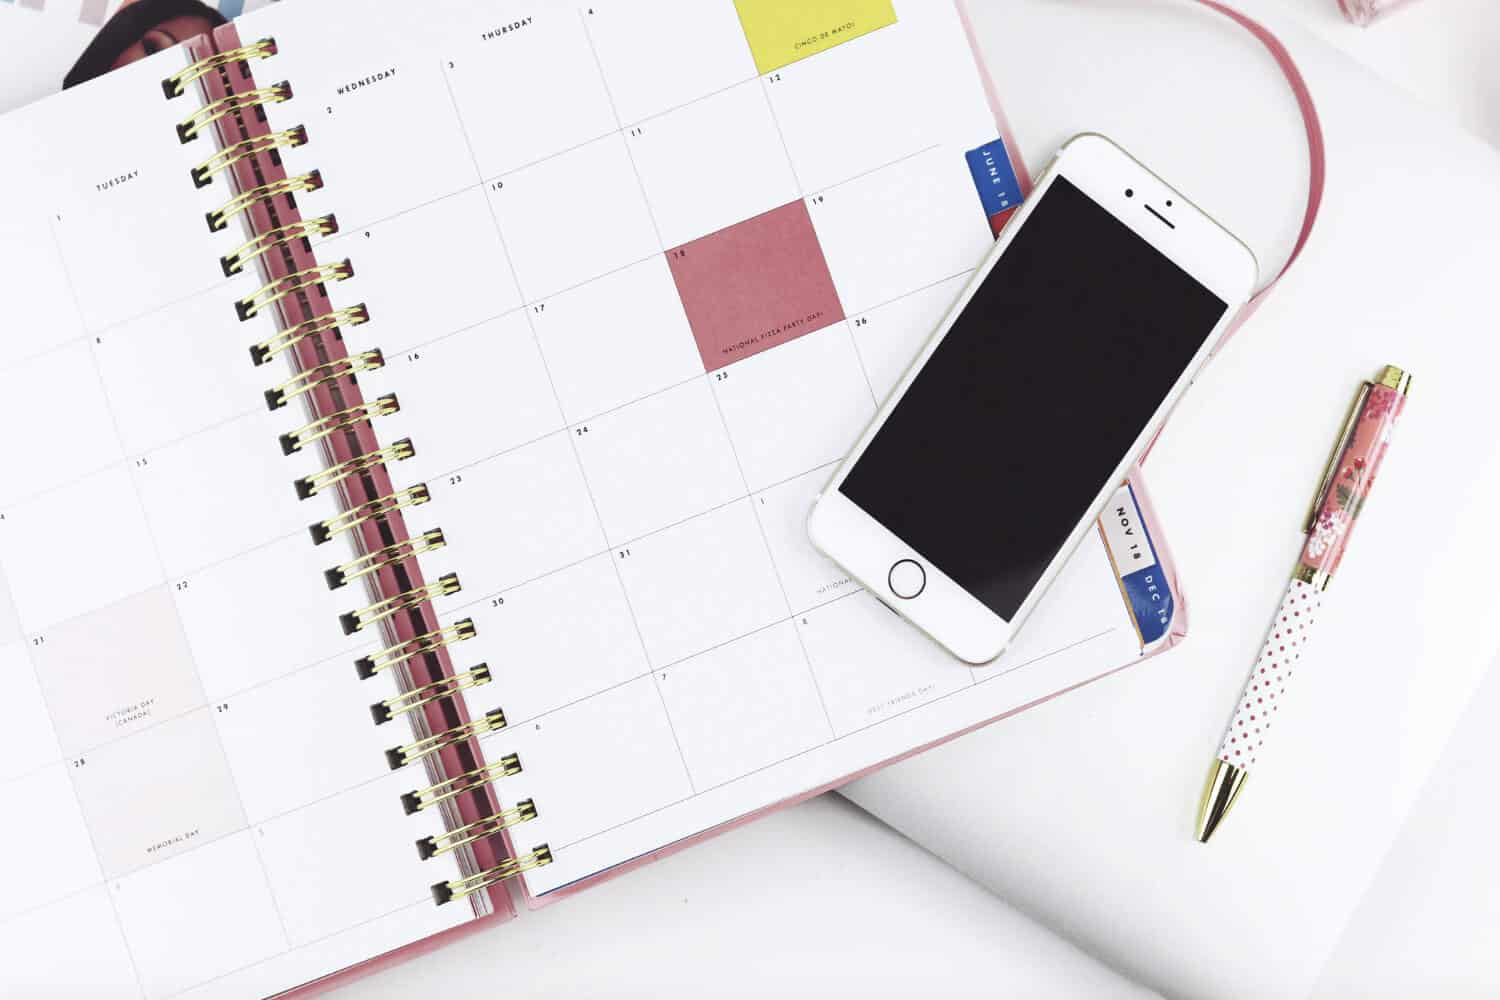 Calendar planner open with pen and cellphone on table